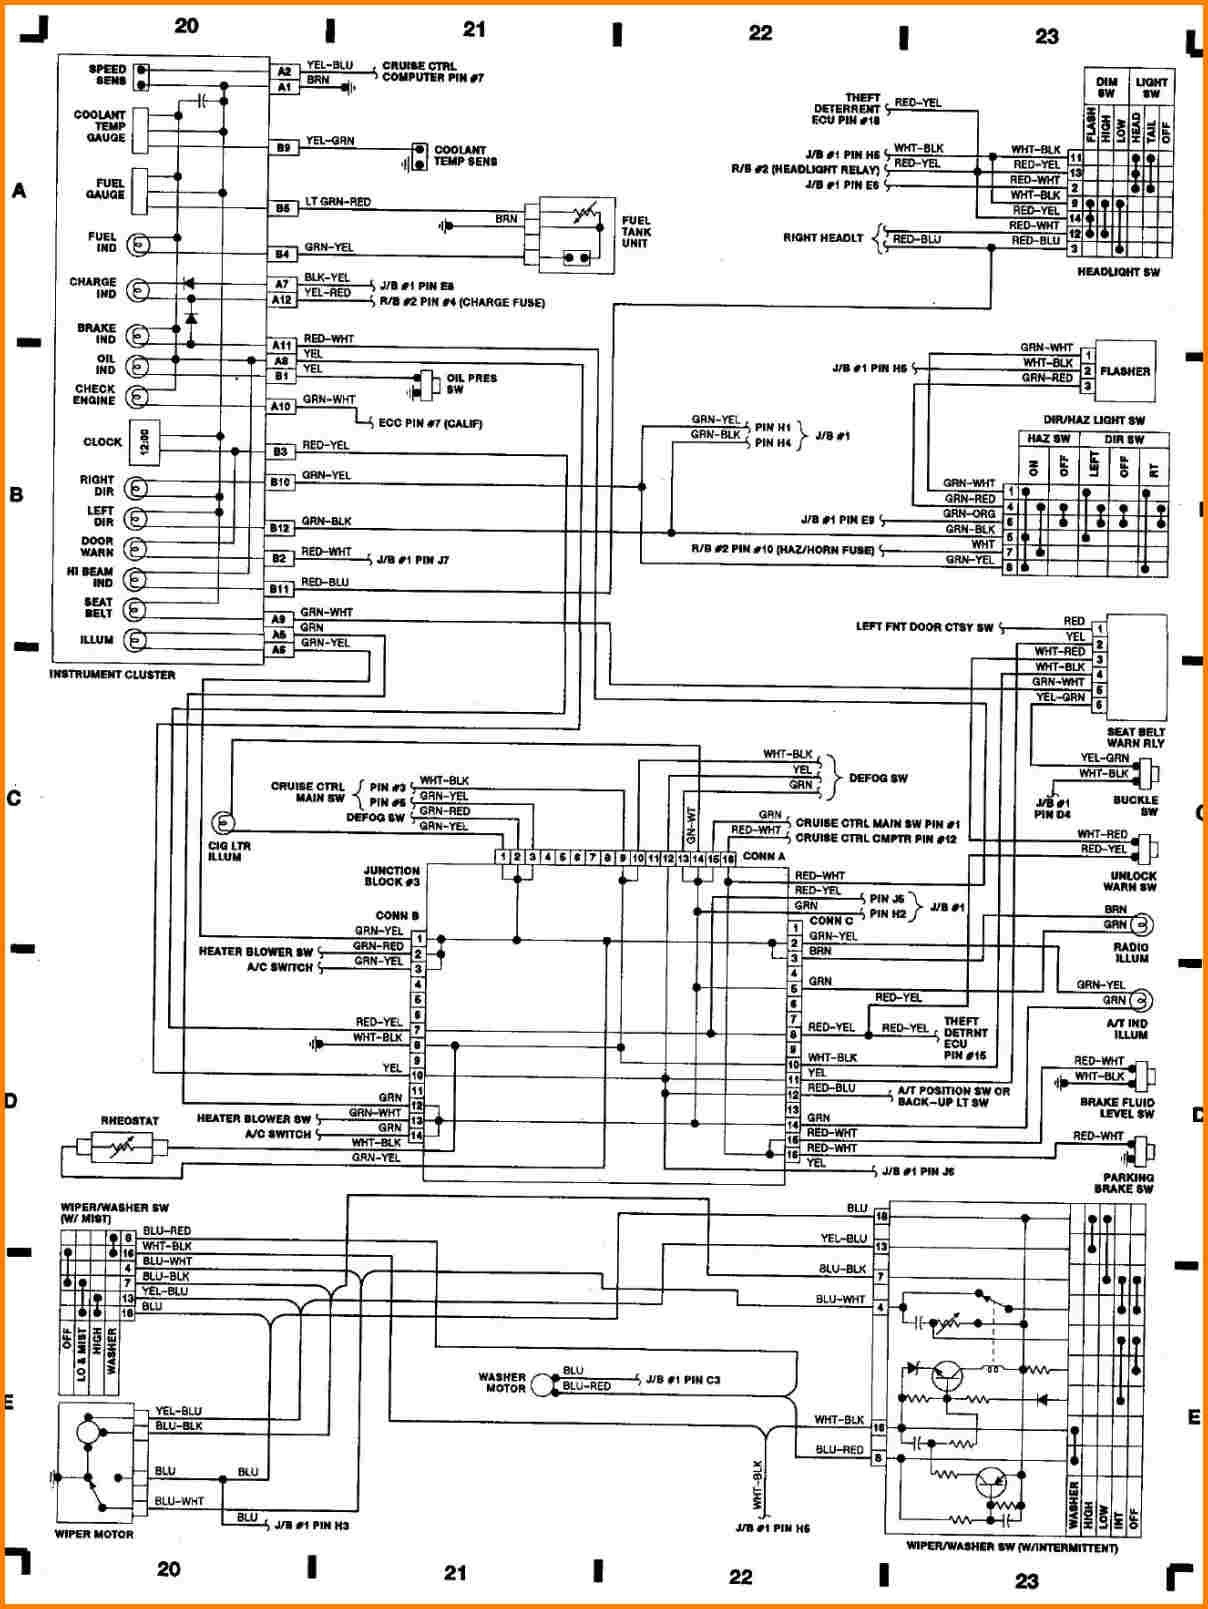 Diagram 06 Toyota Tundra Wiring Diagram Full Version Hd Quality Wiring Diagram Acsawiring Osservatoriodelbiellese It